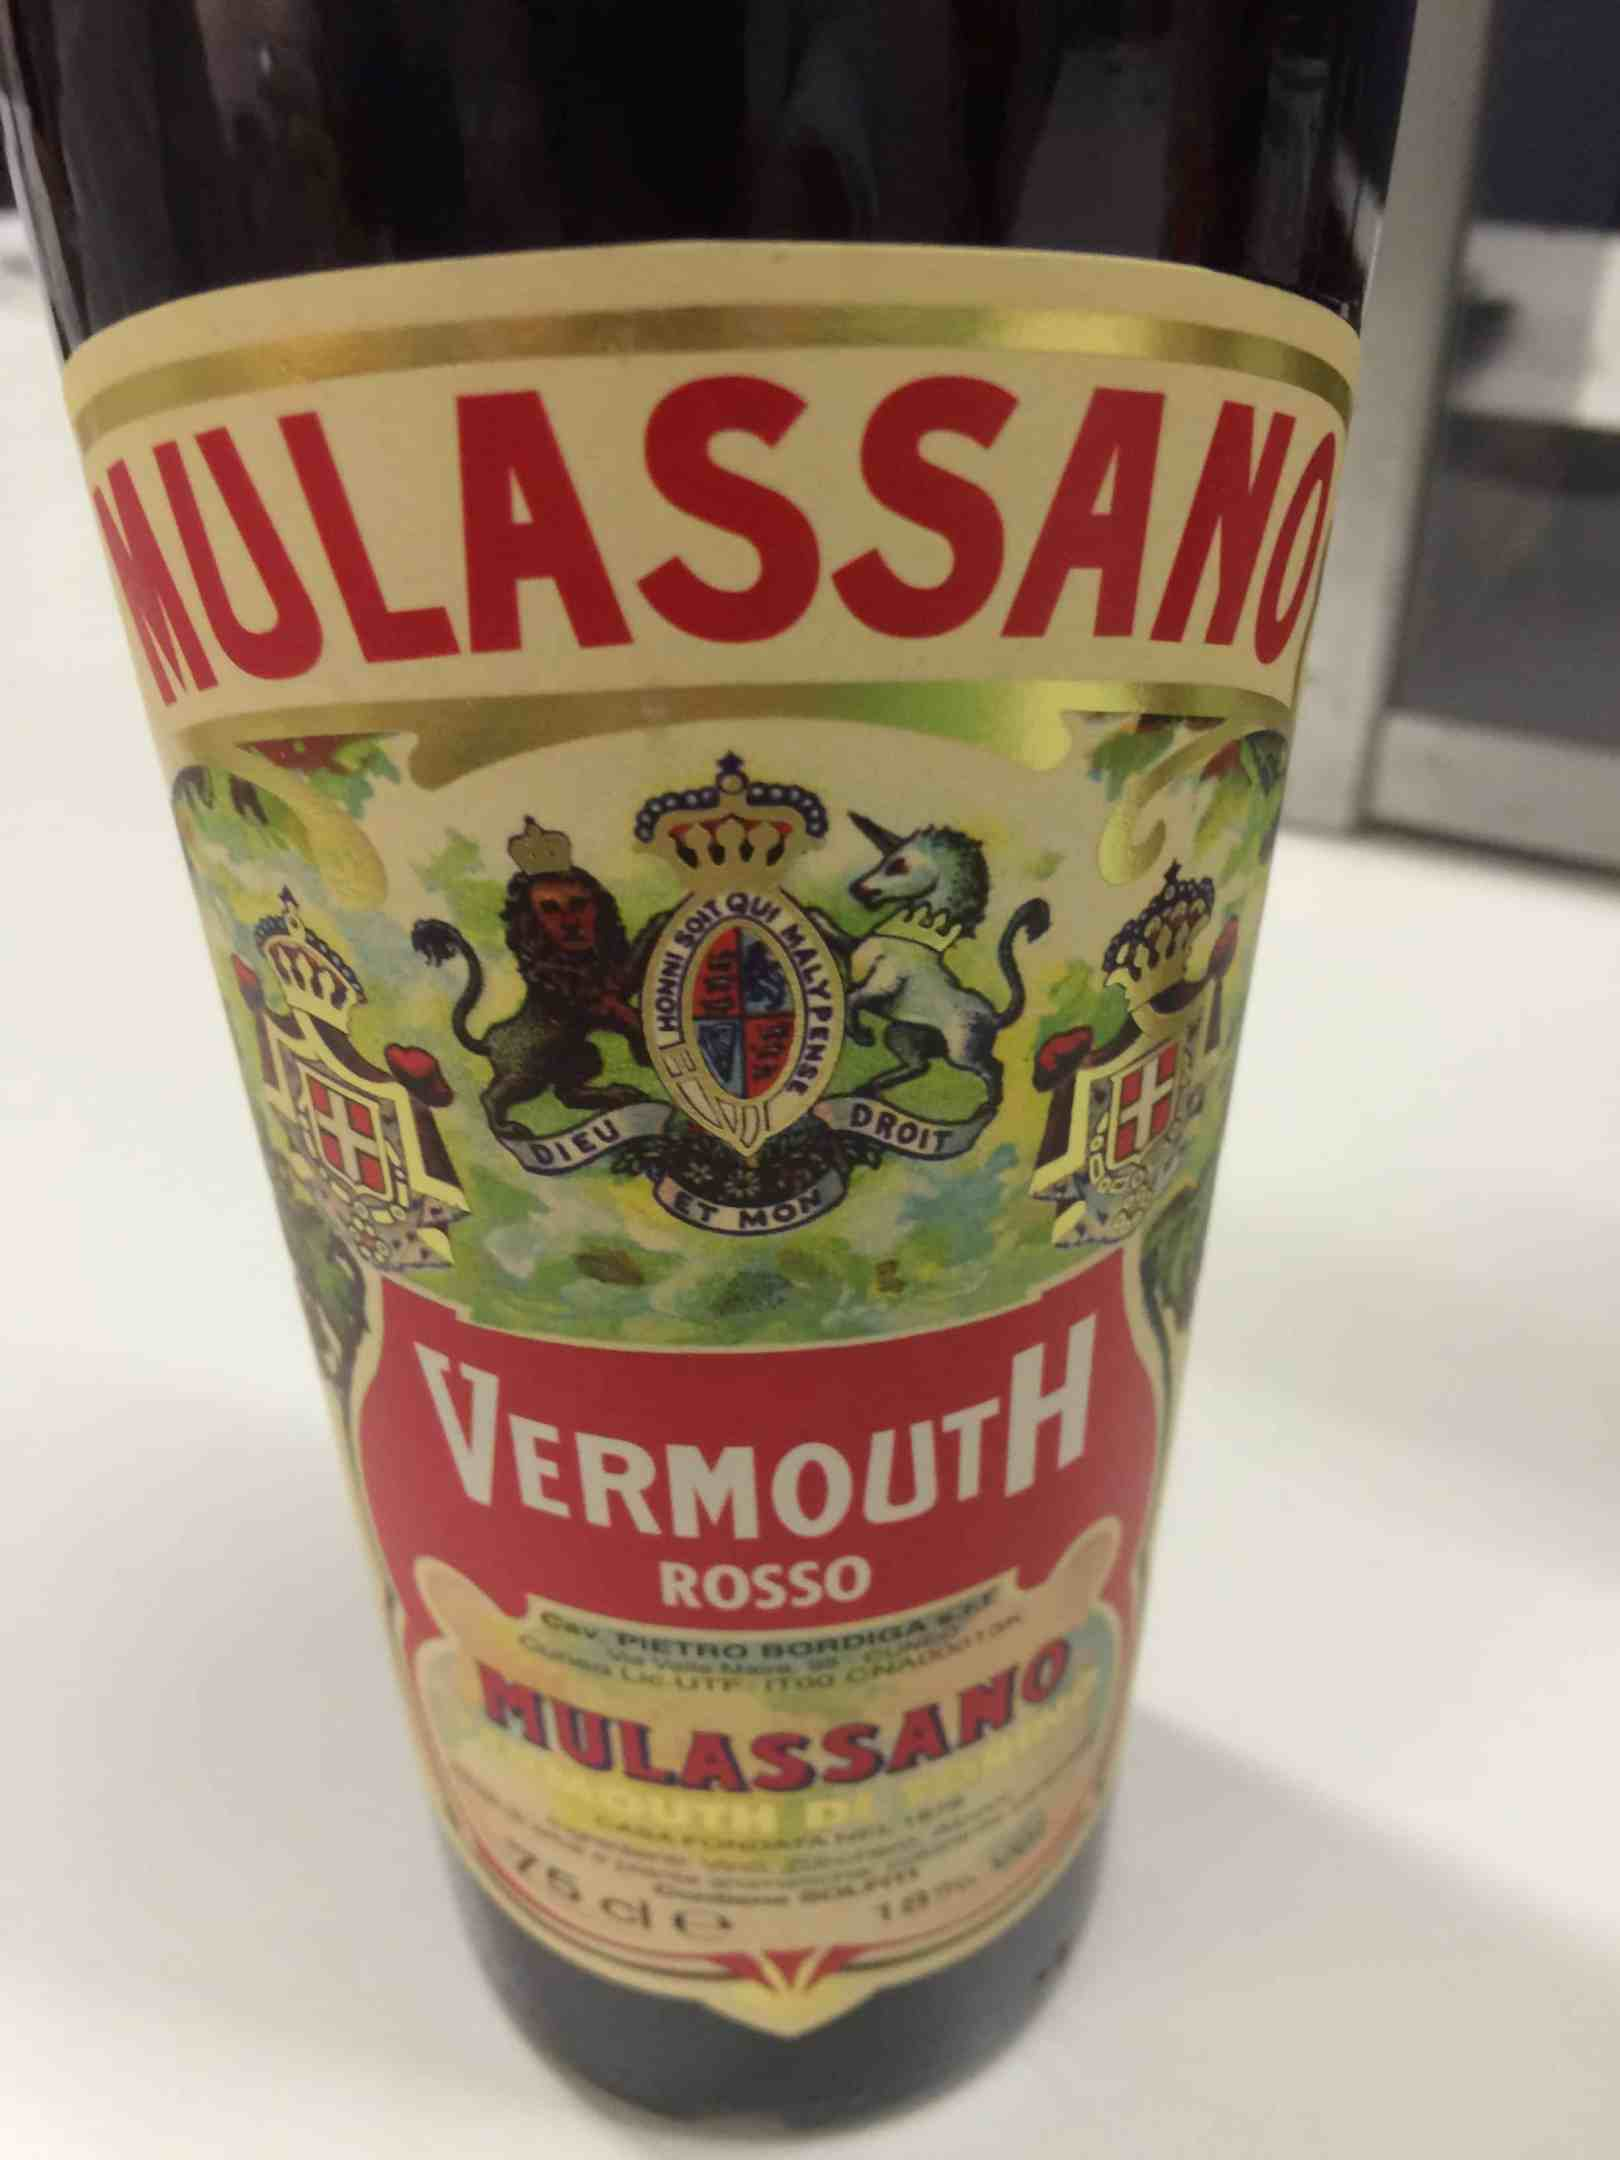 Italian vermouth from Piedmonte